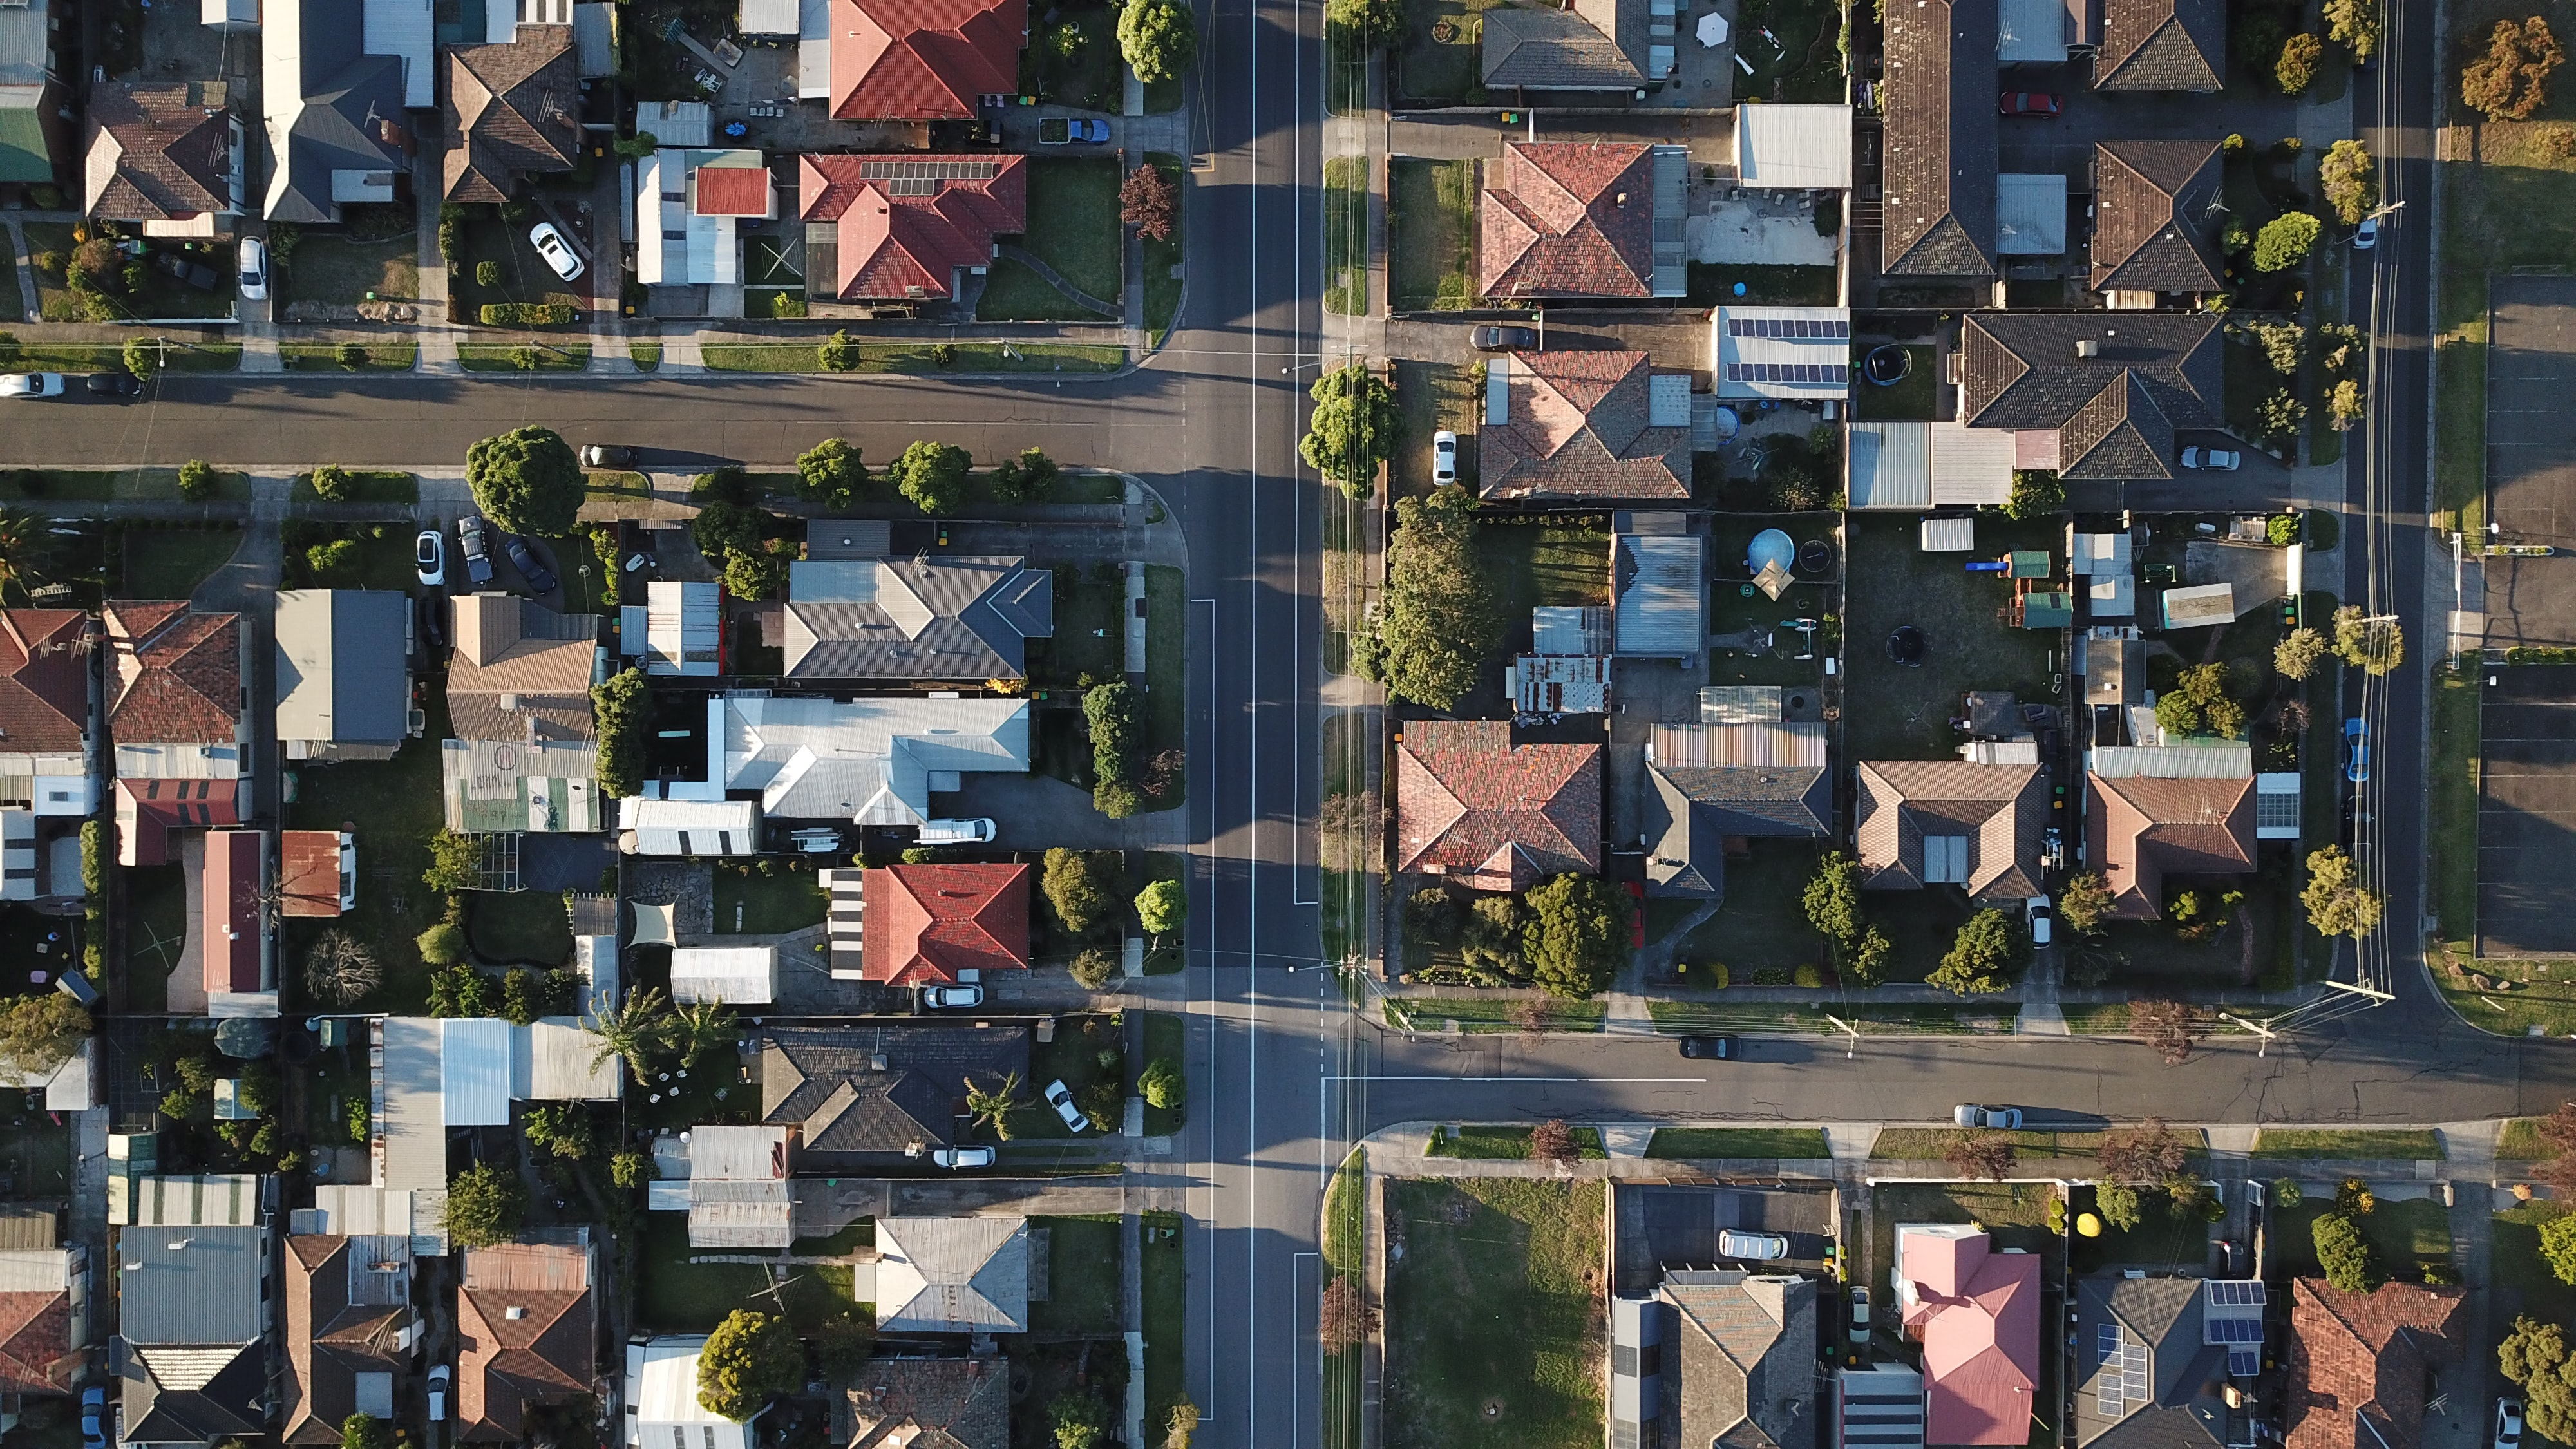 the aerial view of one neighborhood